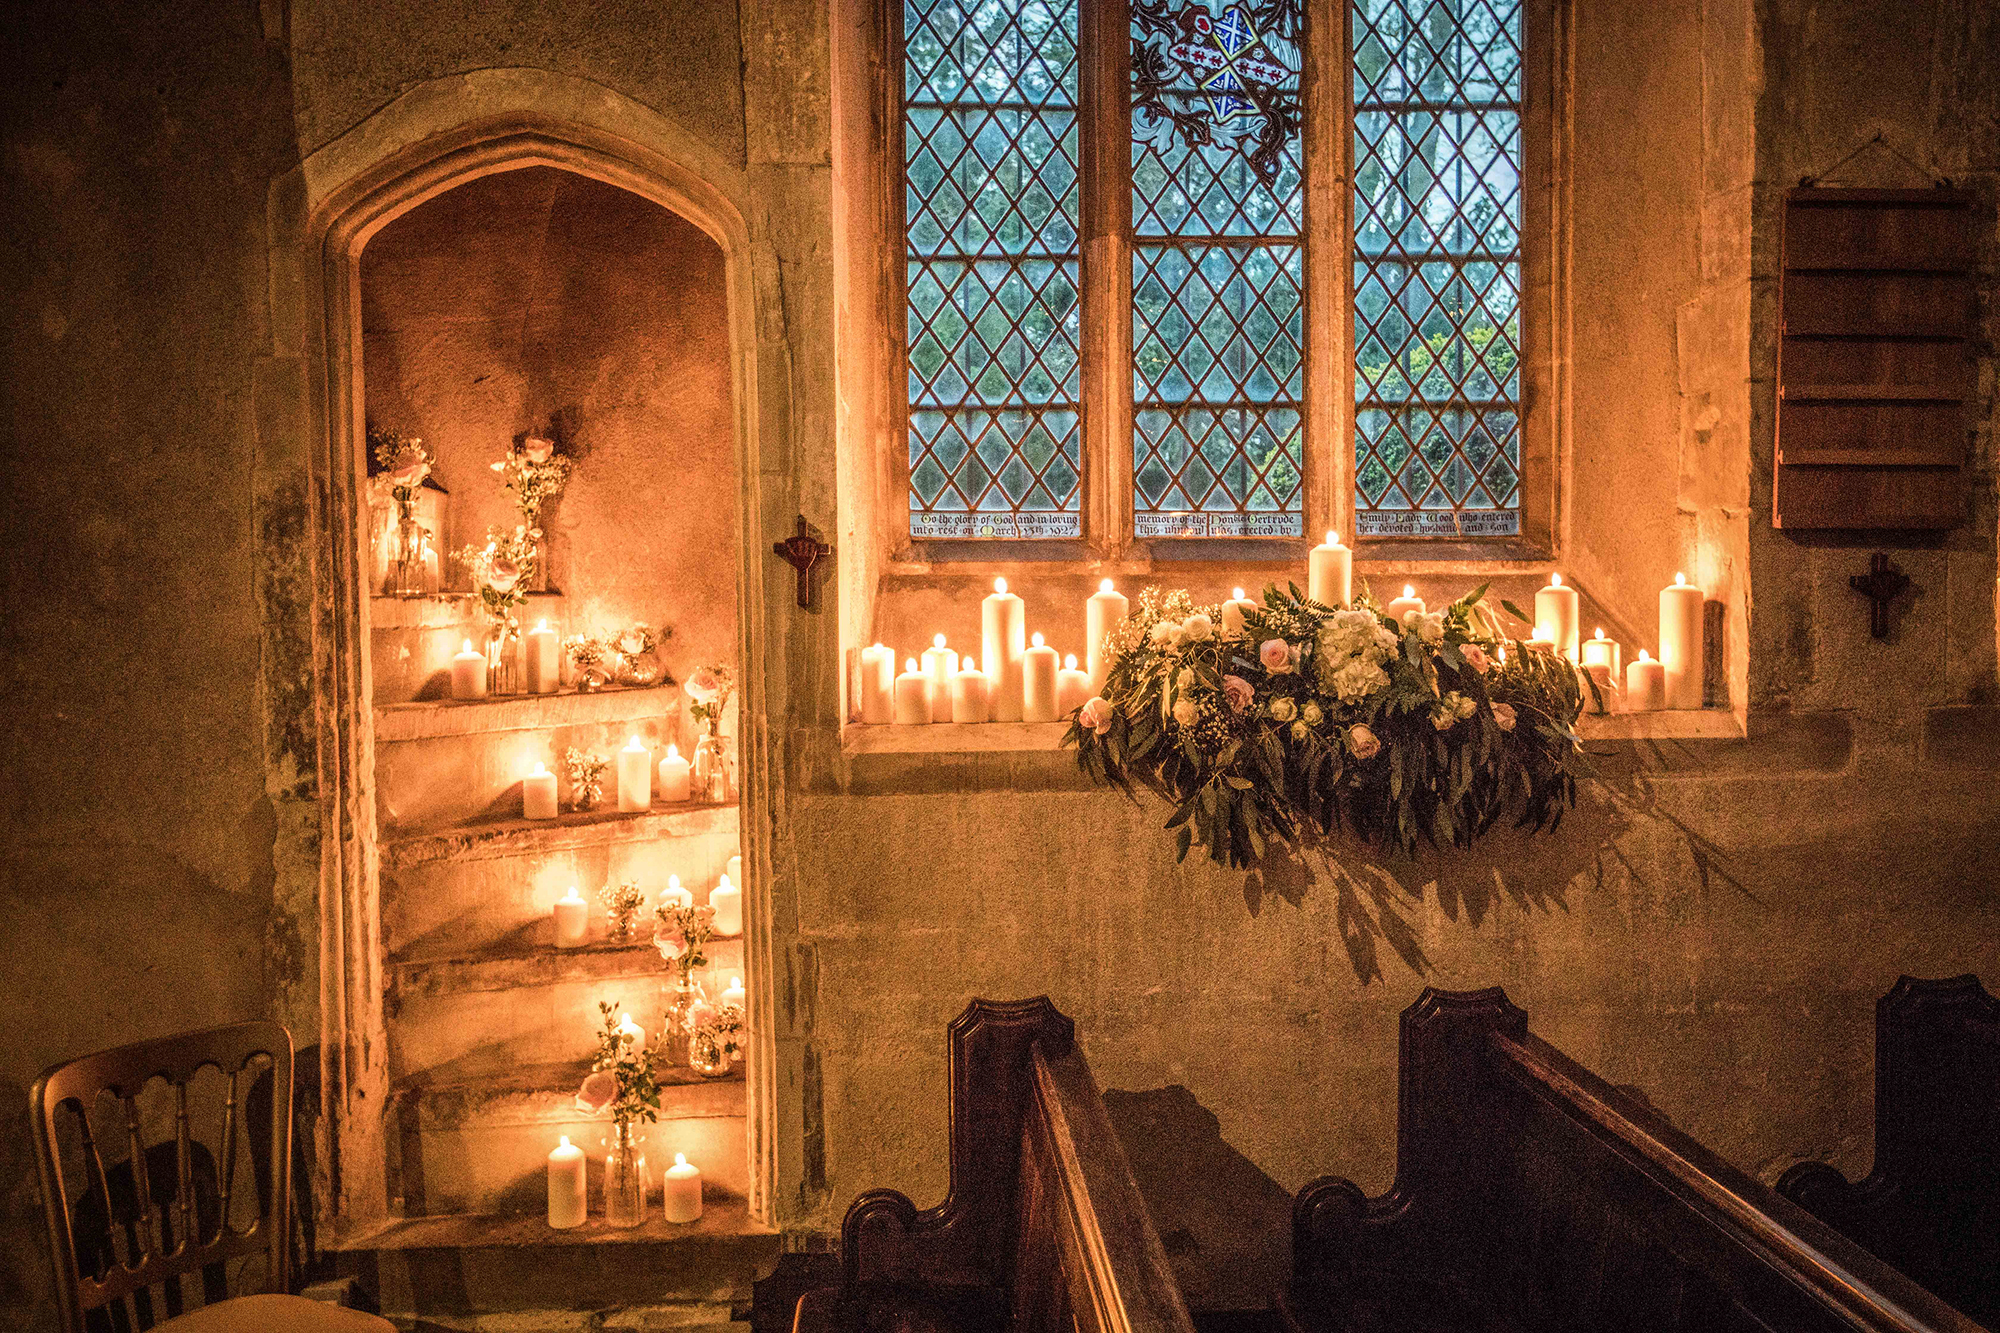 Lit candles and flowers in The Church of St John Latera at Hengrave Hall